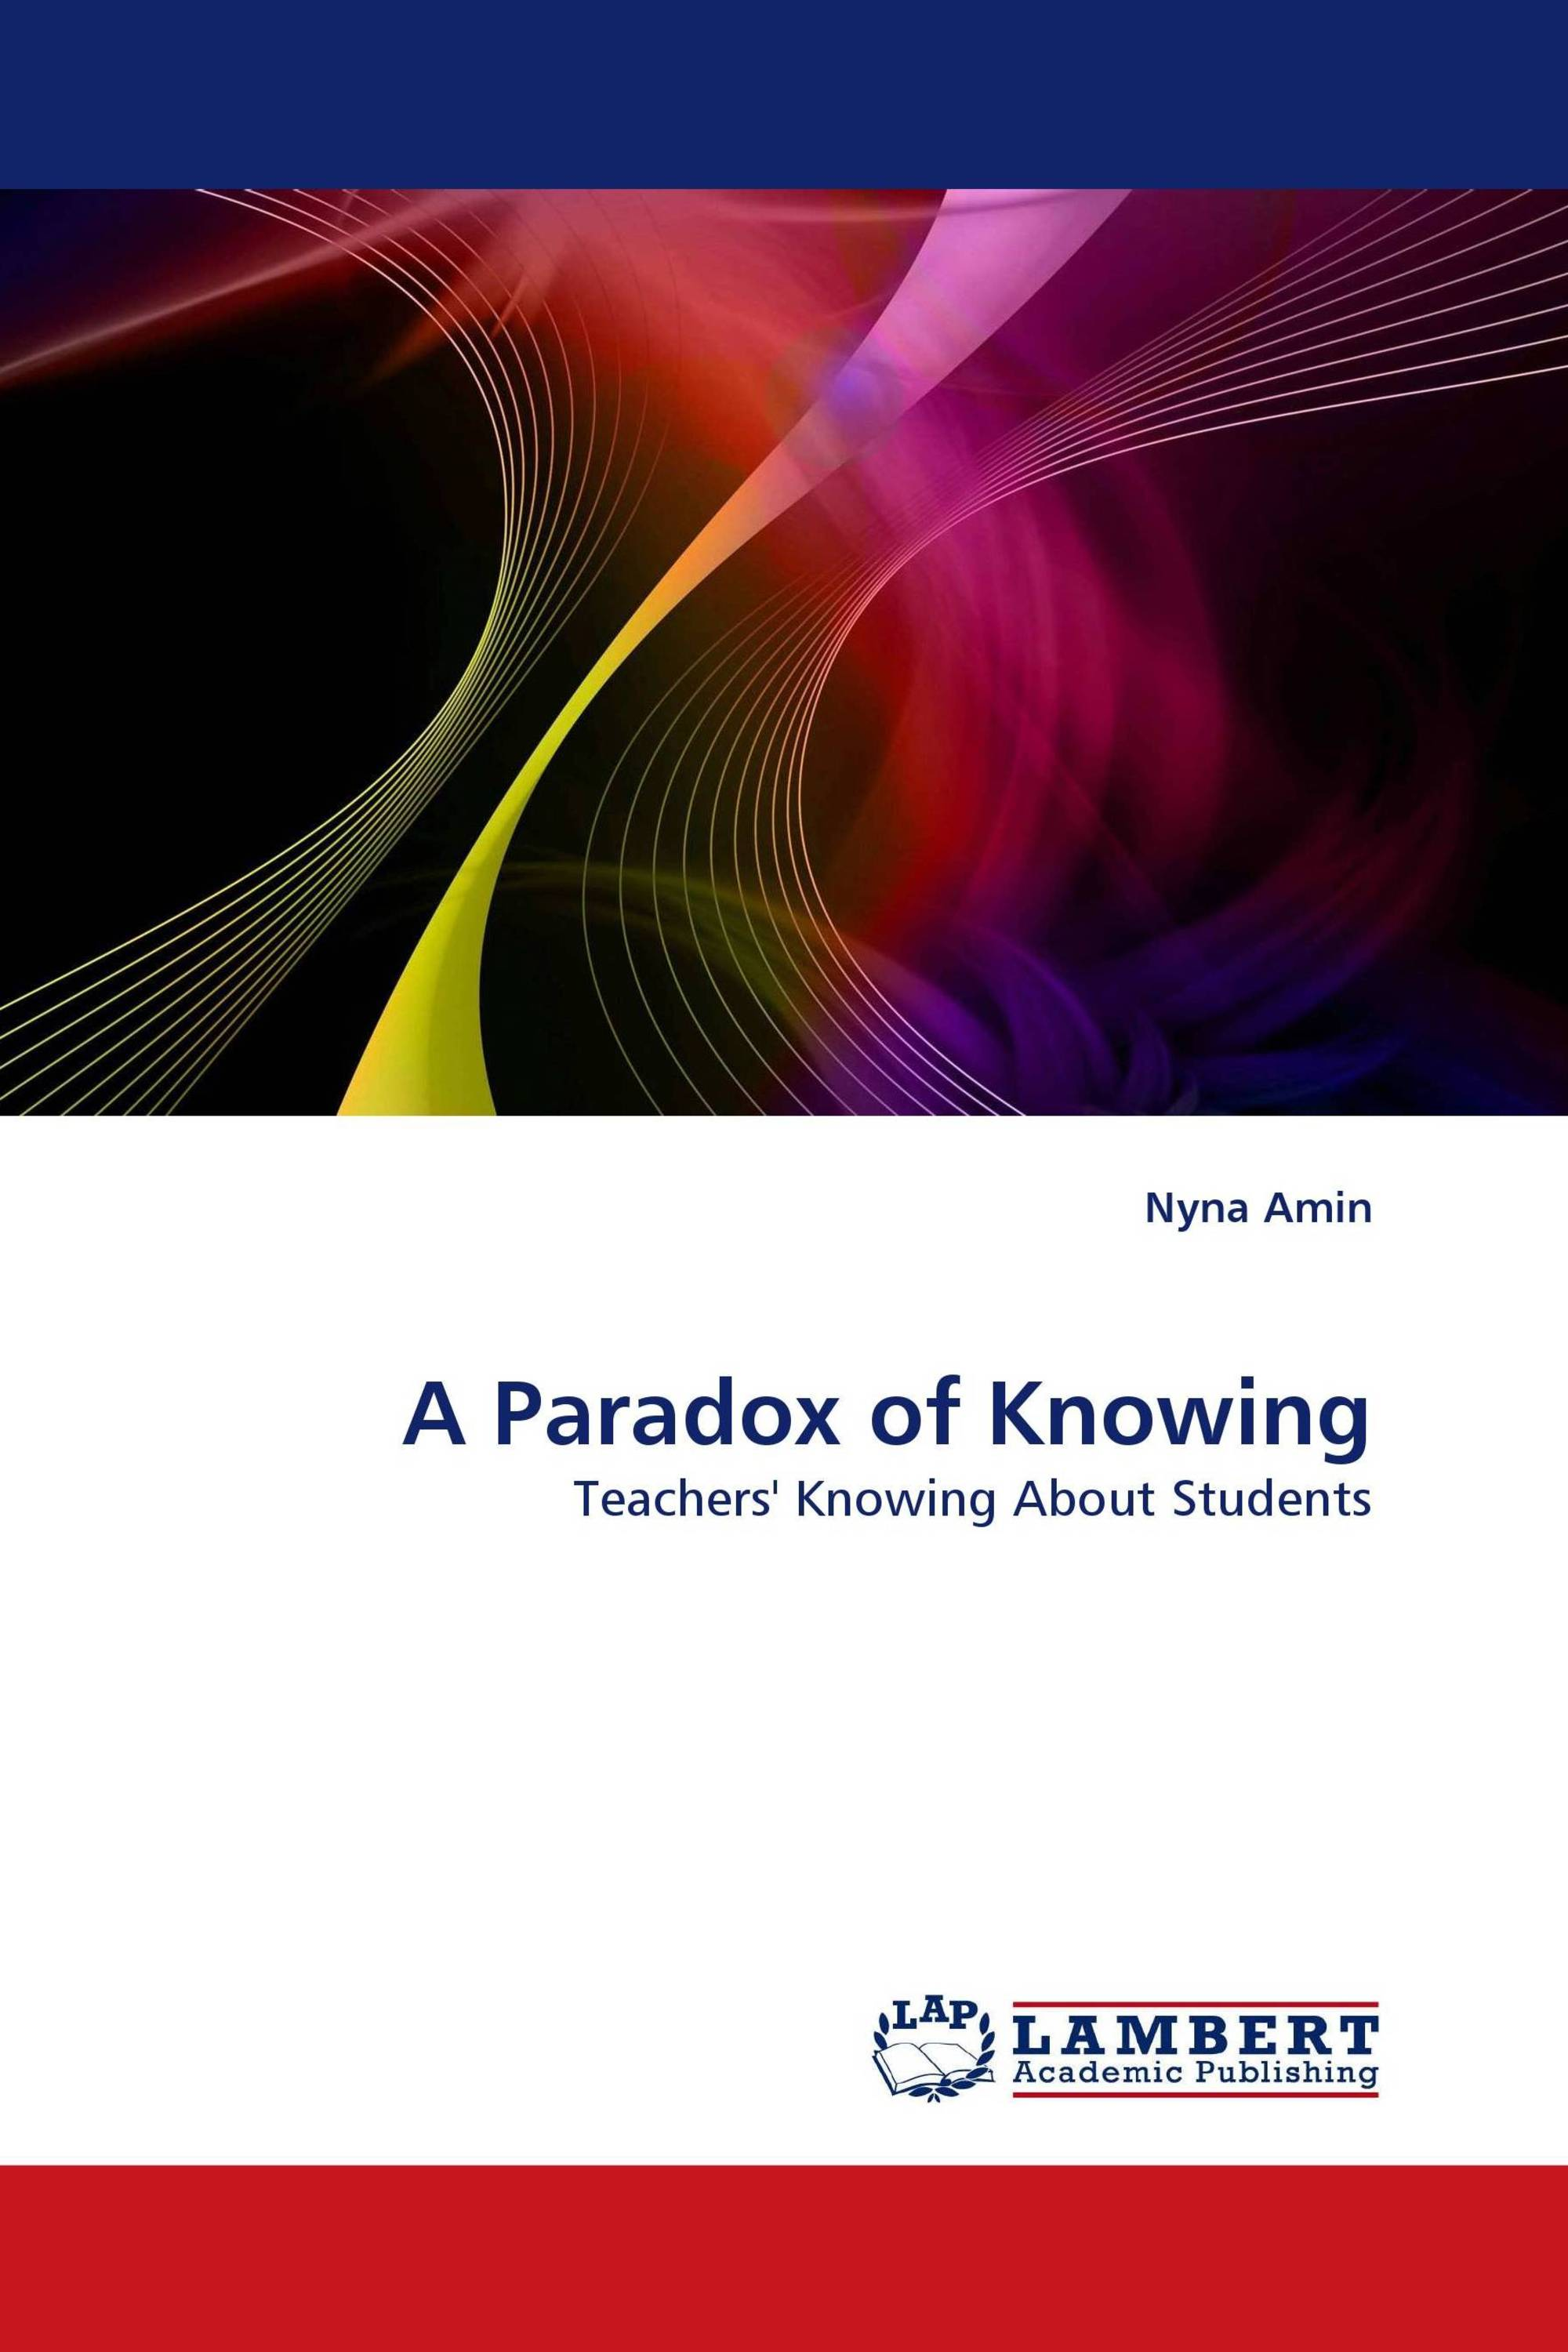 A Paradox of Knowing